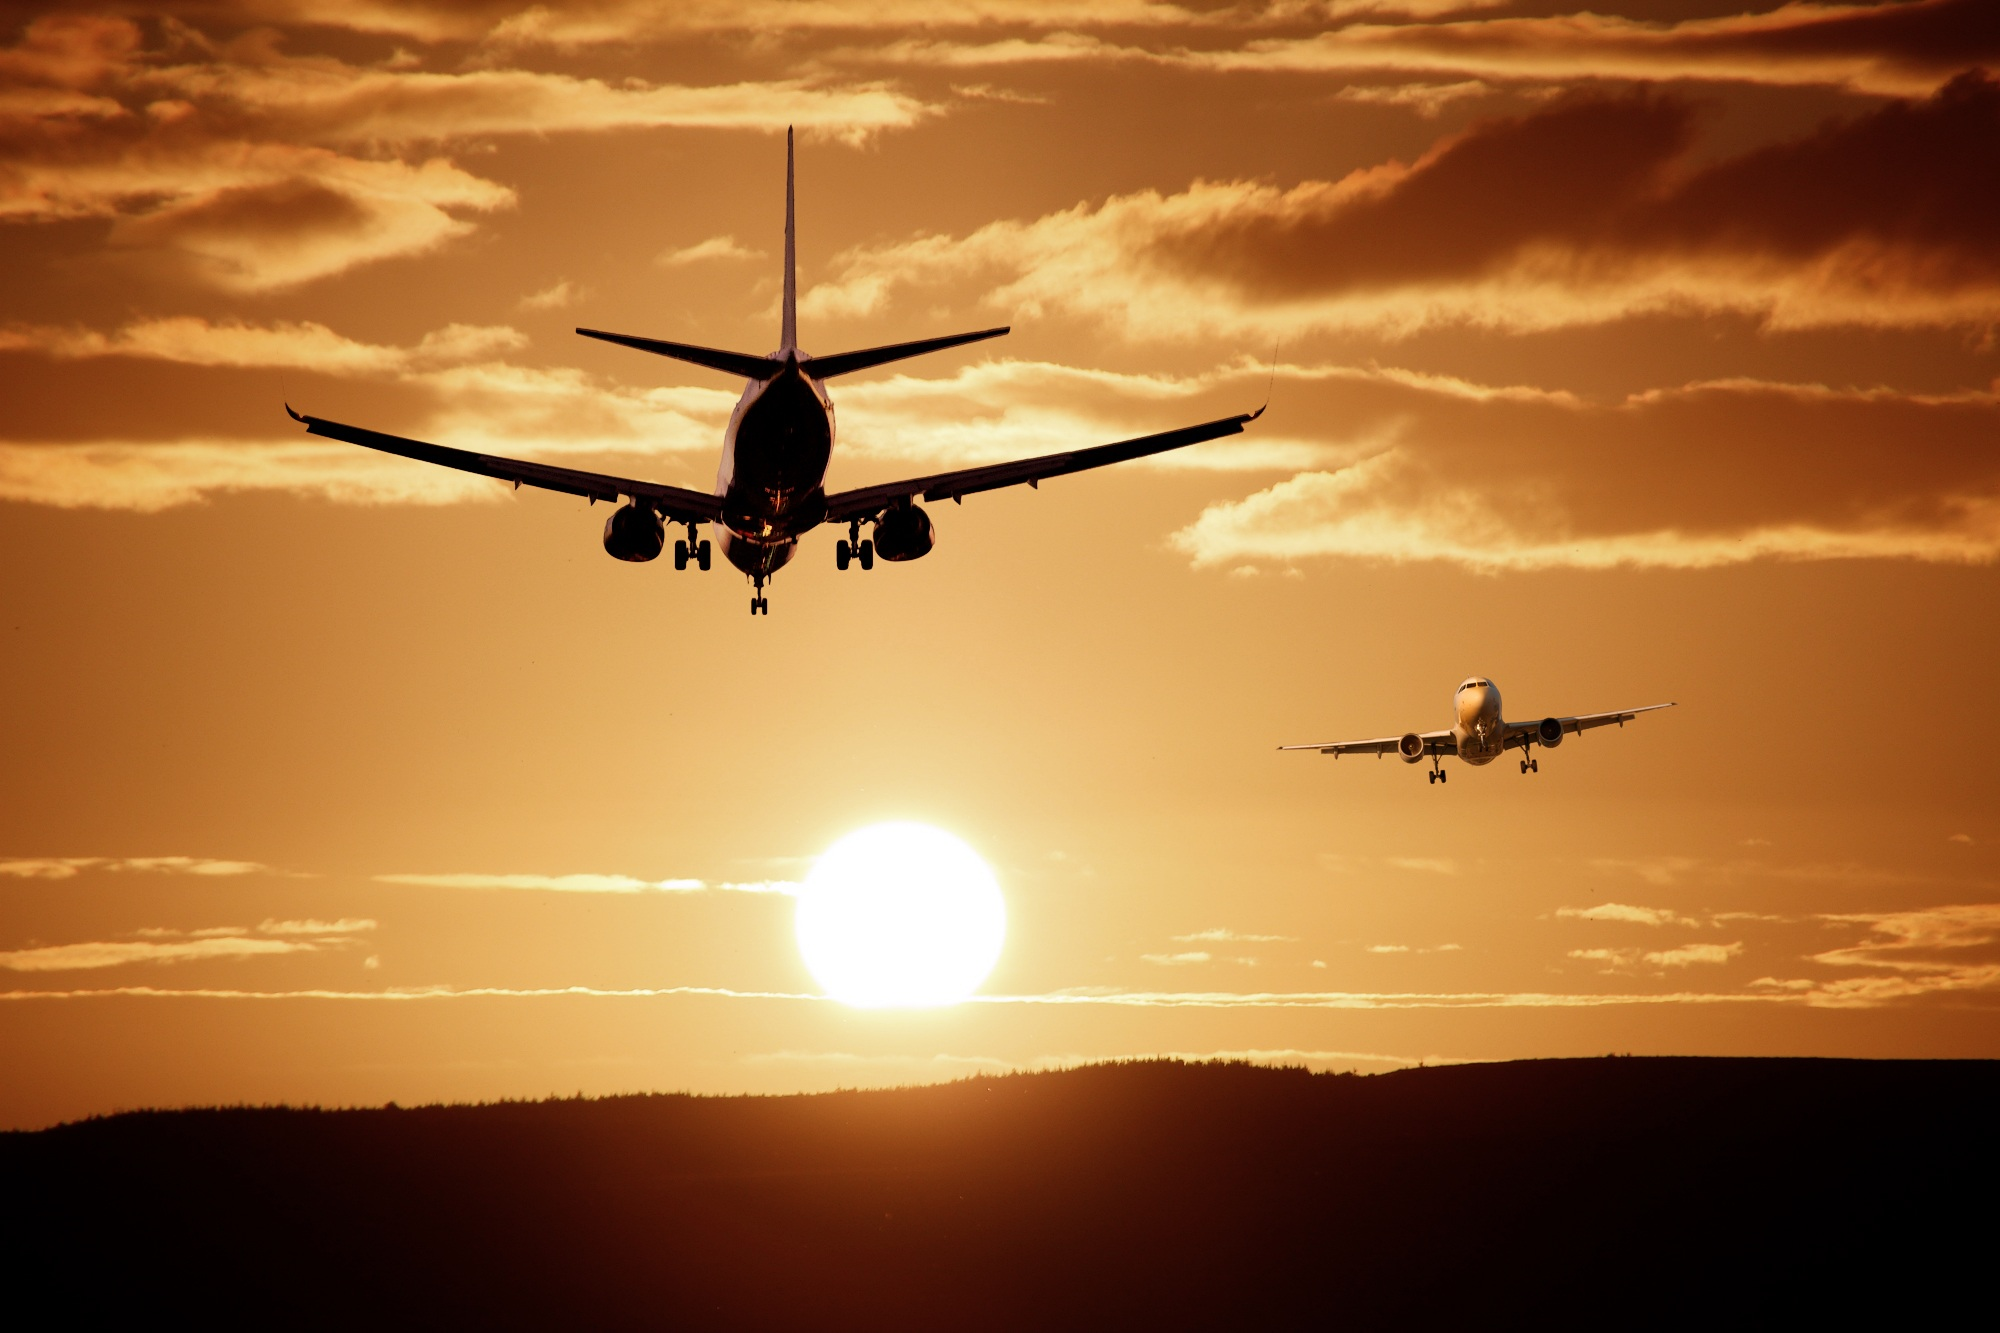 ThePixelman.  Pixabay . The Transportation Security Administration (TSA) is preparing for what is likely to be the agency's busiest travel season ever, as 263 million passengers and crew are projected to pass through security checkpoints nationwide from Memorial Day weekend through Labor Day weekend – Thursday, May 23, through Tuesday, September 3.